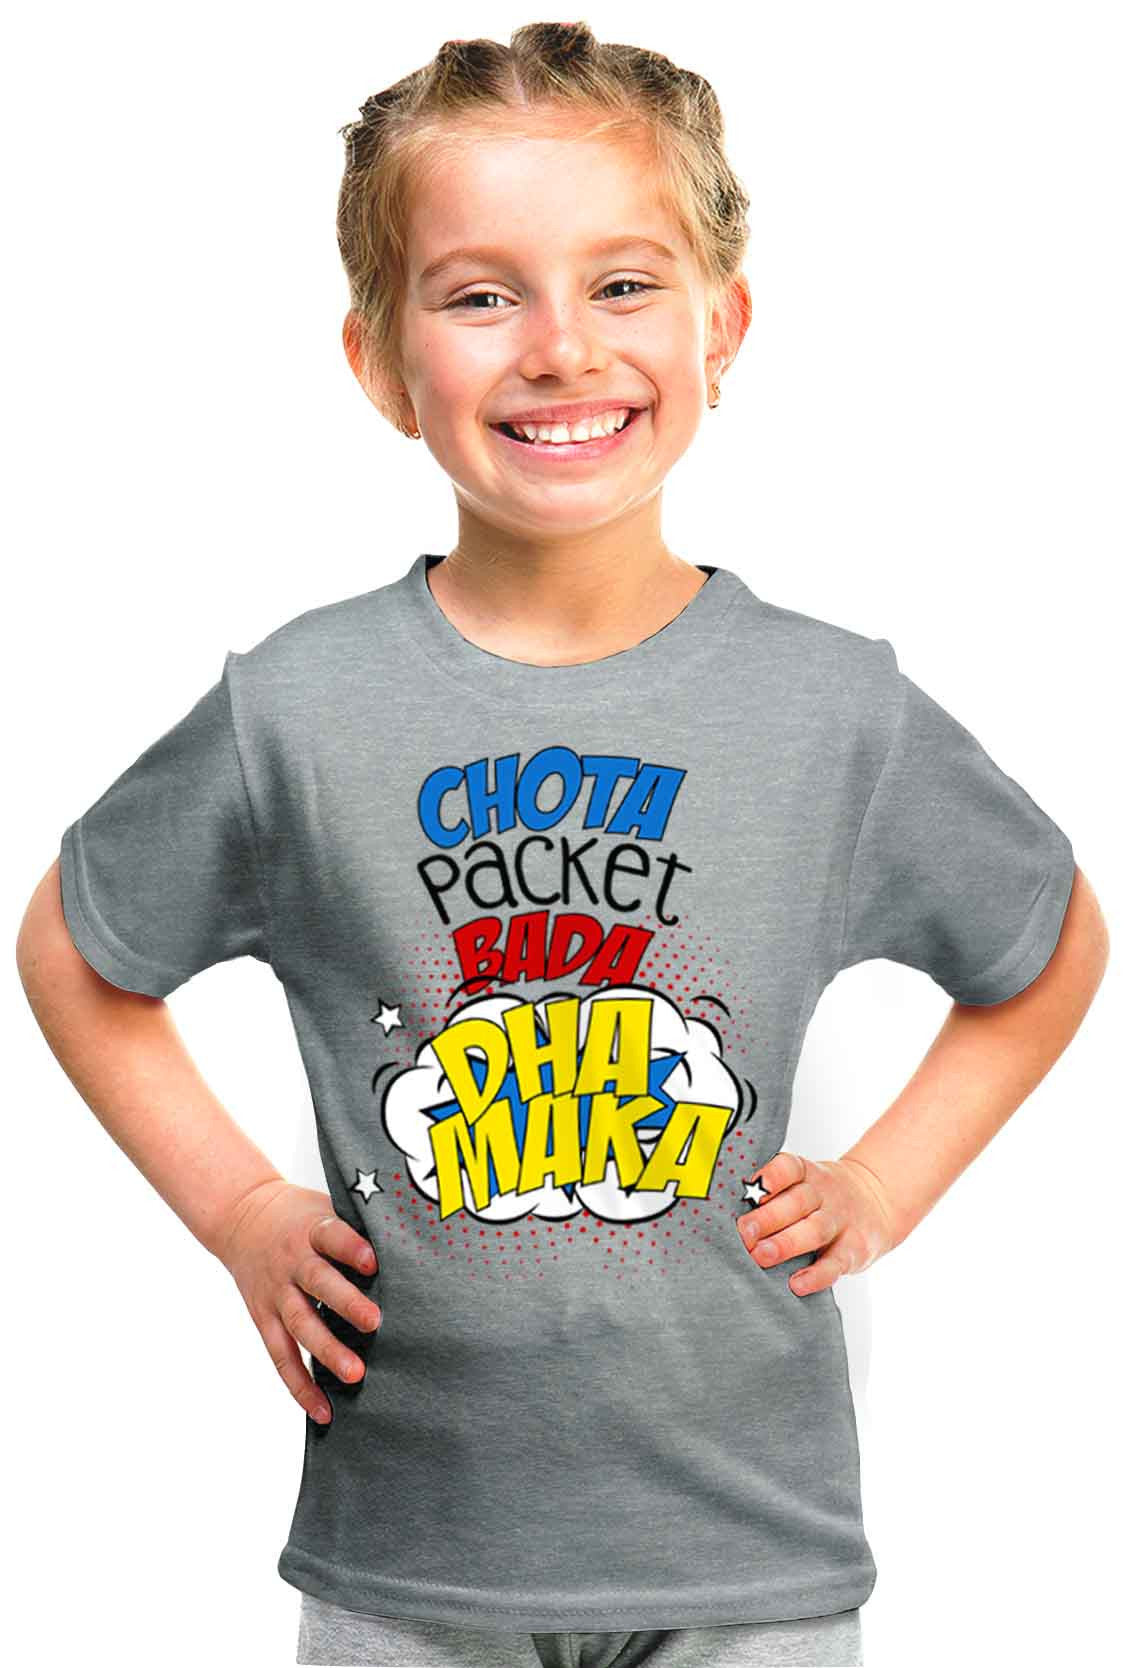 Design your t shirt india - Chota Packet Bada Dhamaka Kid S Tshirt Wear Your Opinion Wyo In 1